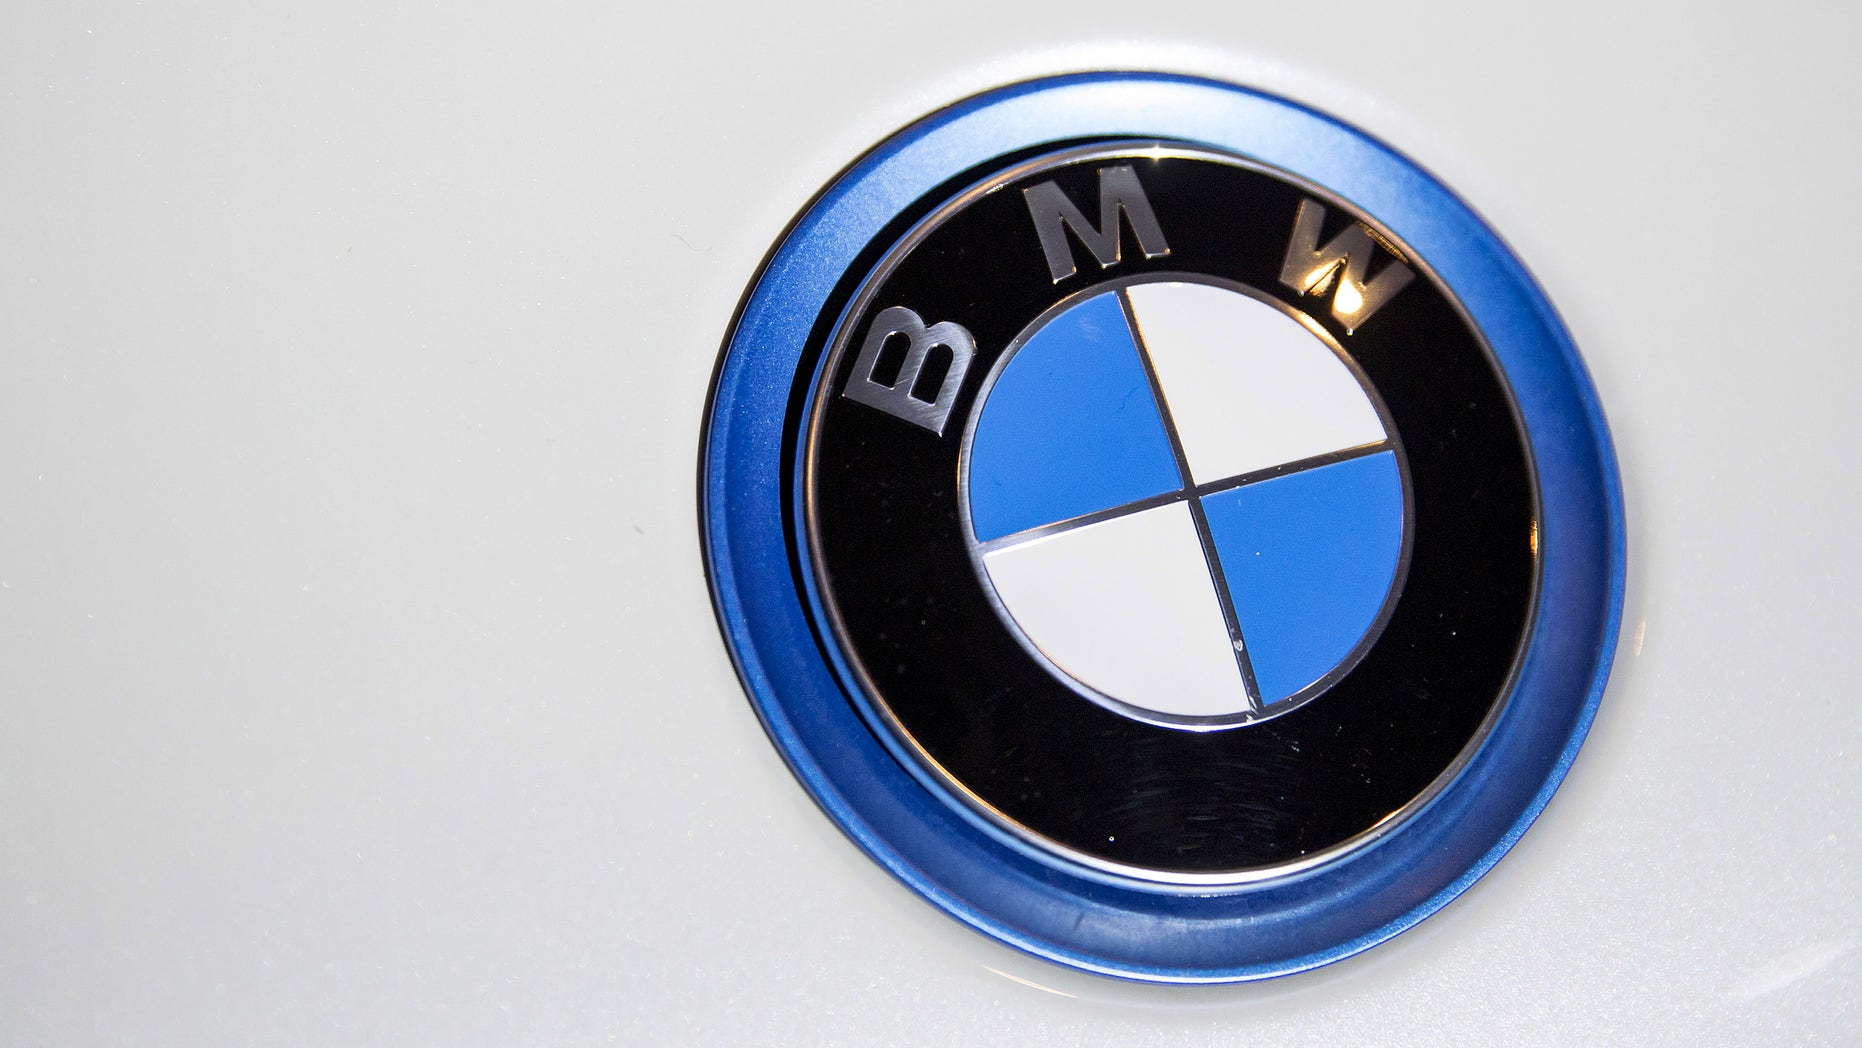 A BMW emblem is pictured at the 2015 New York International Auto Show in New York City, in this April 2, 2015 file photo. Record sales of SUVs helped German carmaker BMW AG to beat first-quarter profit forecasts, despite slowing demand growth in China. REUTERS/Eric Thayer/Files - RTX1BSDA